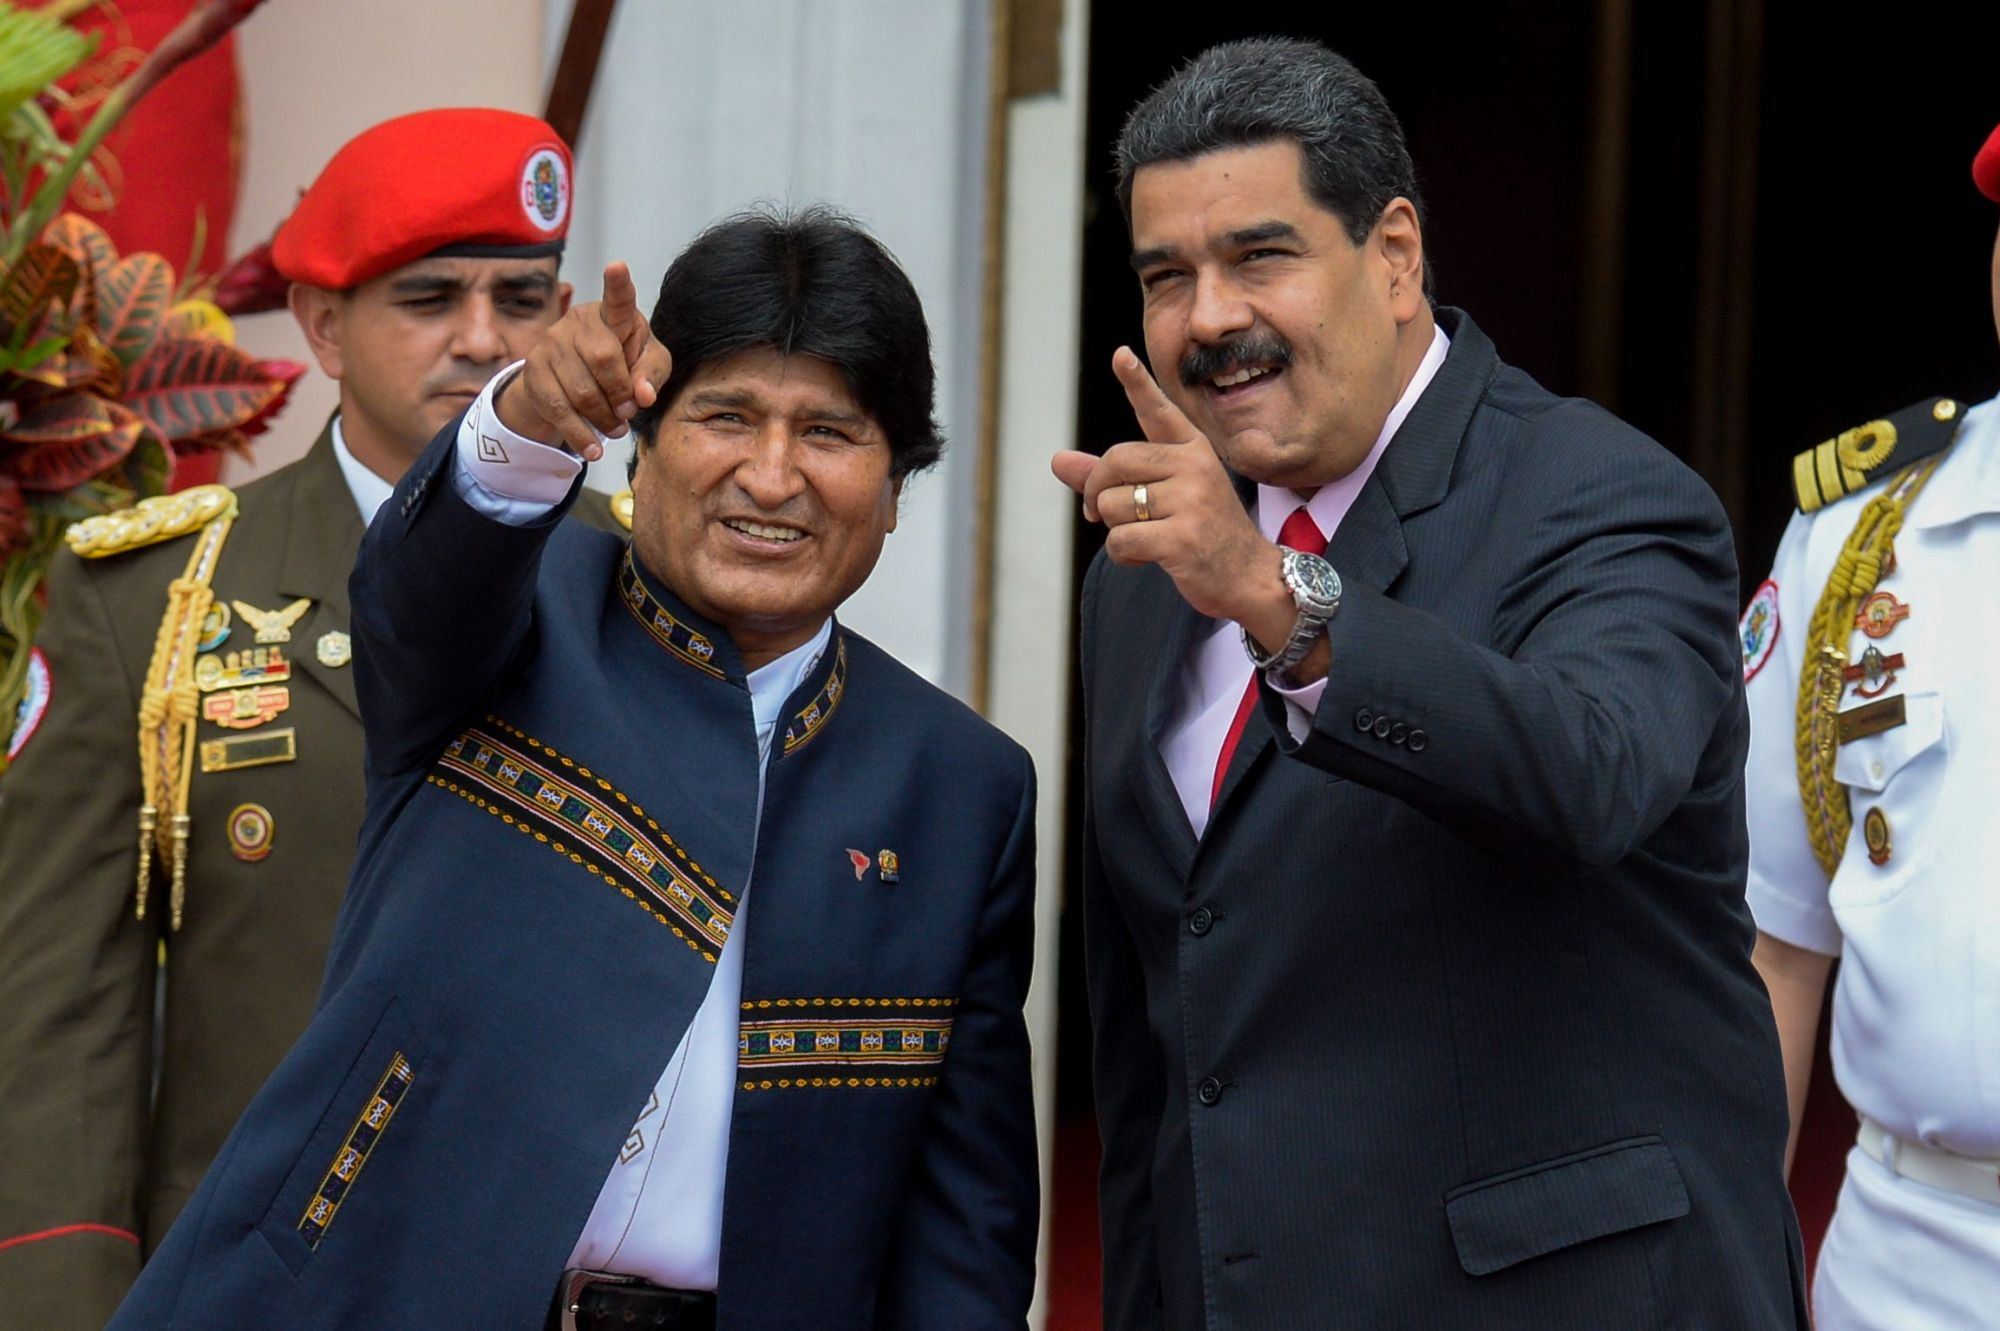 Venezuelan President Nicolas Maduro (right) and Bolivian President Evo Morales gesture during the Bolivarian Alliance for the Peoples of Our America (ALBA) summit at the Miraflores presidential palace in Caracas in 2017. Morales resigned on Sunday, caving in following three weeks of sometimes-violent protests over his disputed re-election after the army and police withdrew their backing.   AFP-JIJI